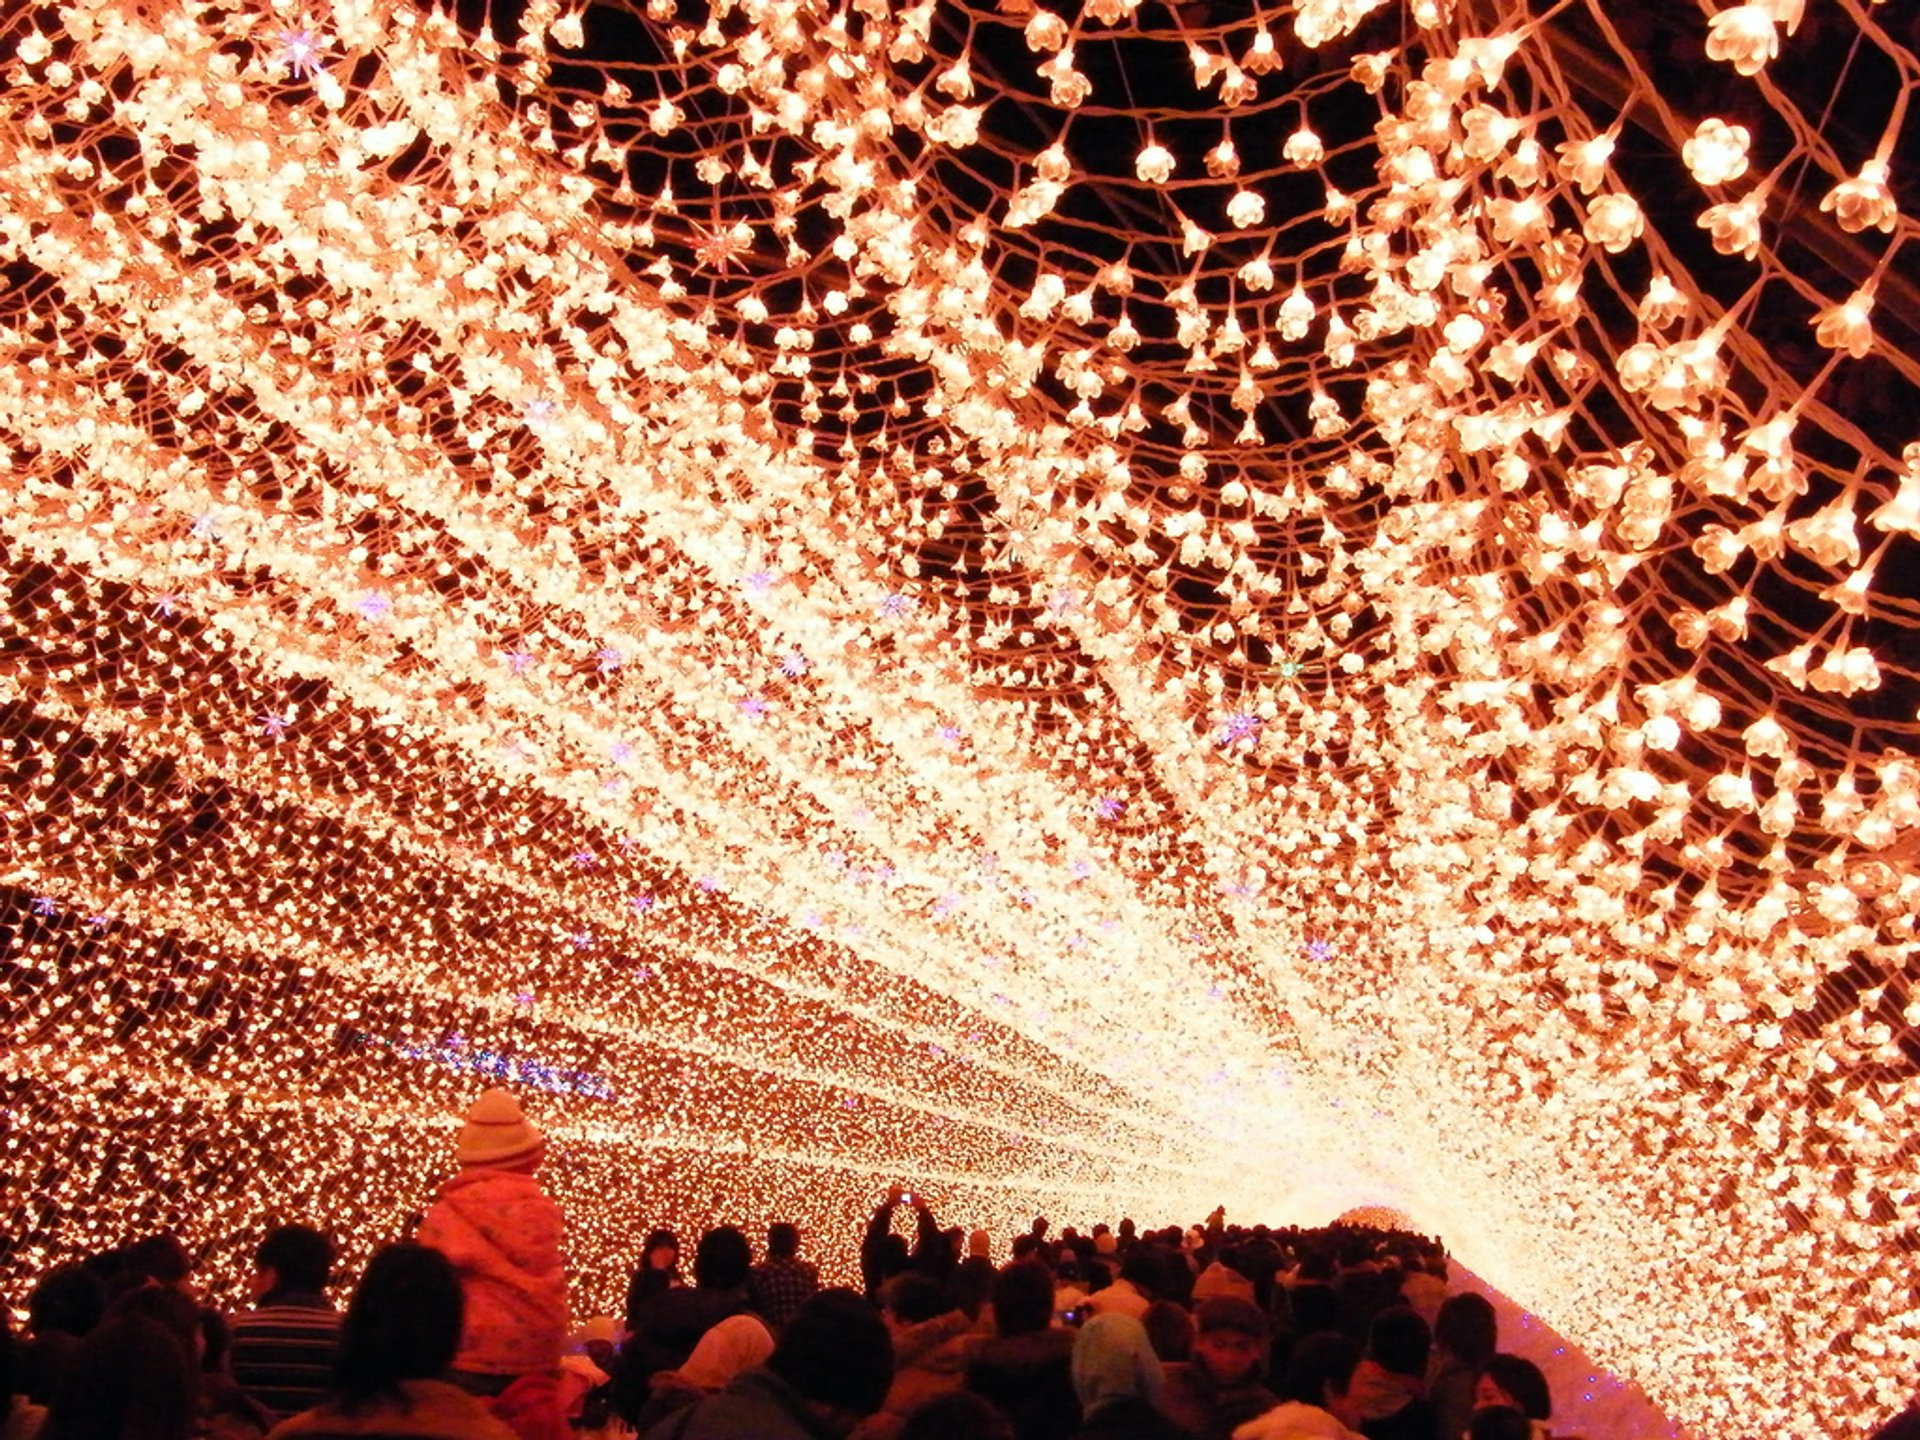 Best time for Nabana No Sato Winter Illumination in Japan 2019